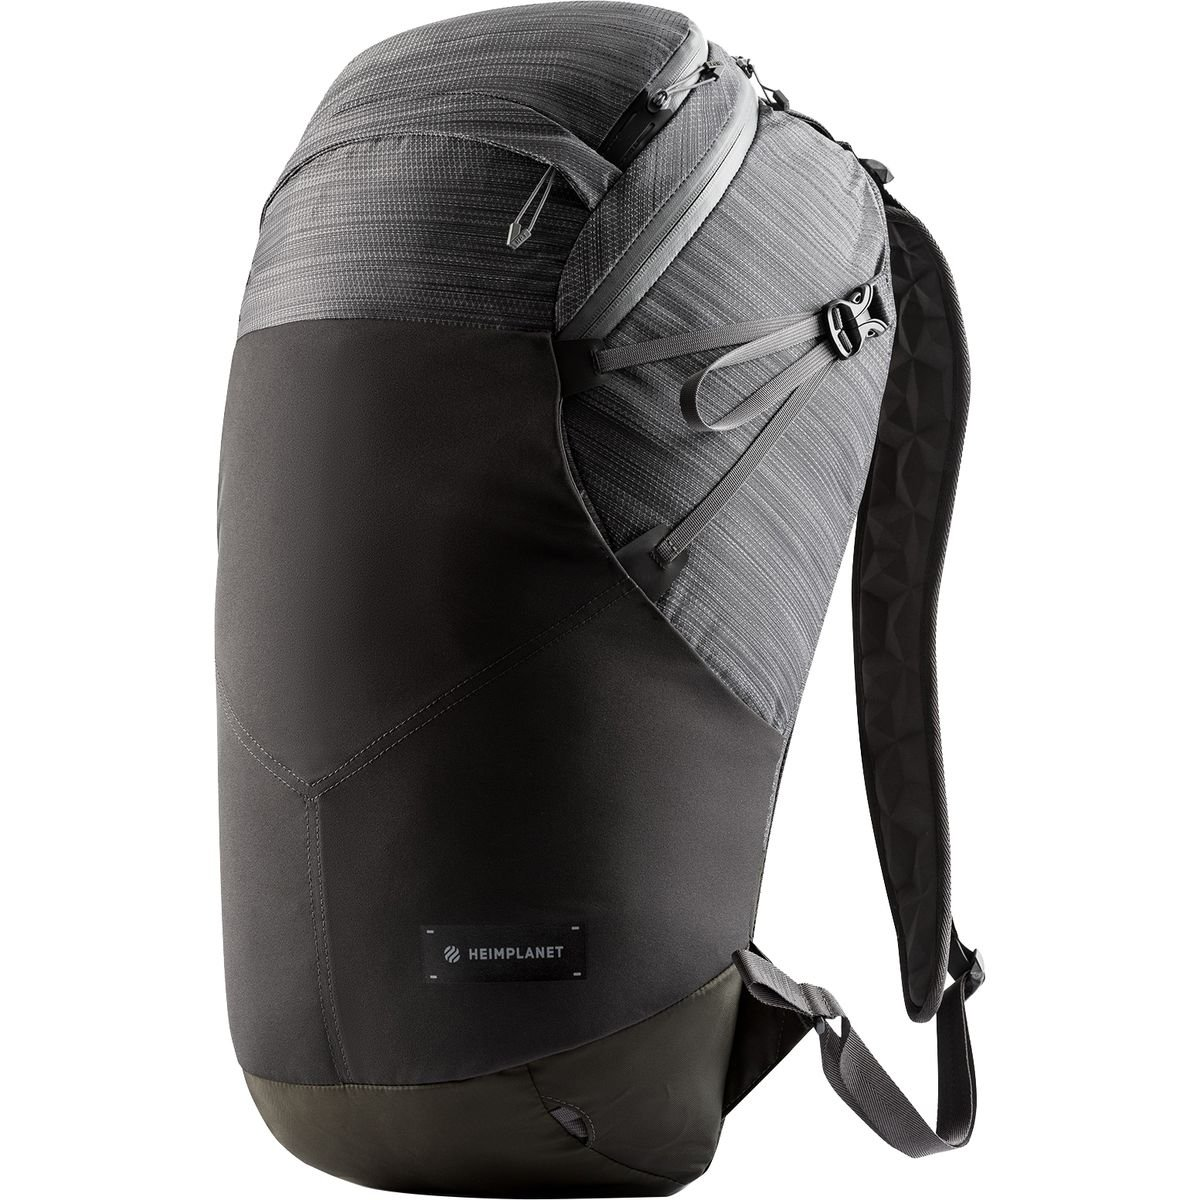 Heimplanetモーション楕円ノートパソコンバックパック B071R3D2KG ダークグレー One Size